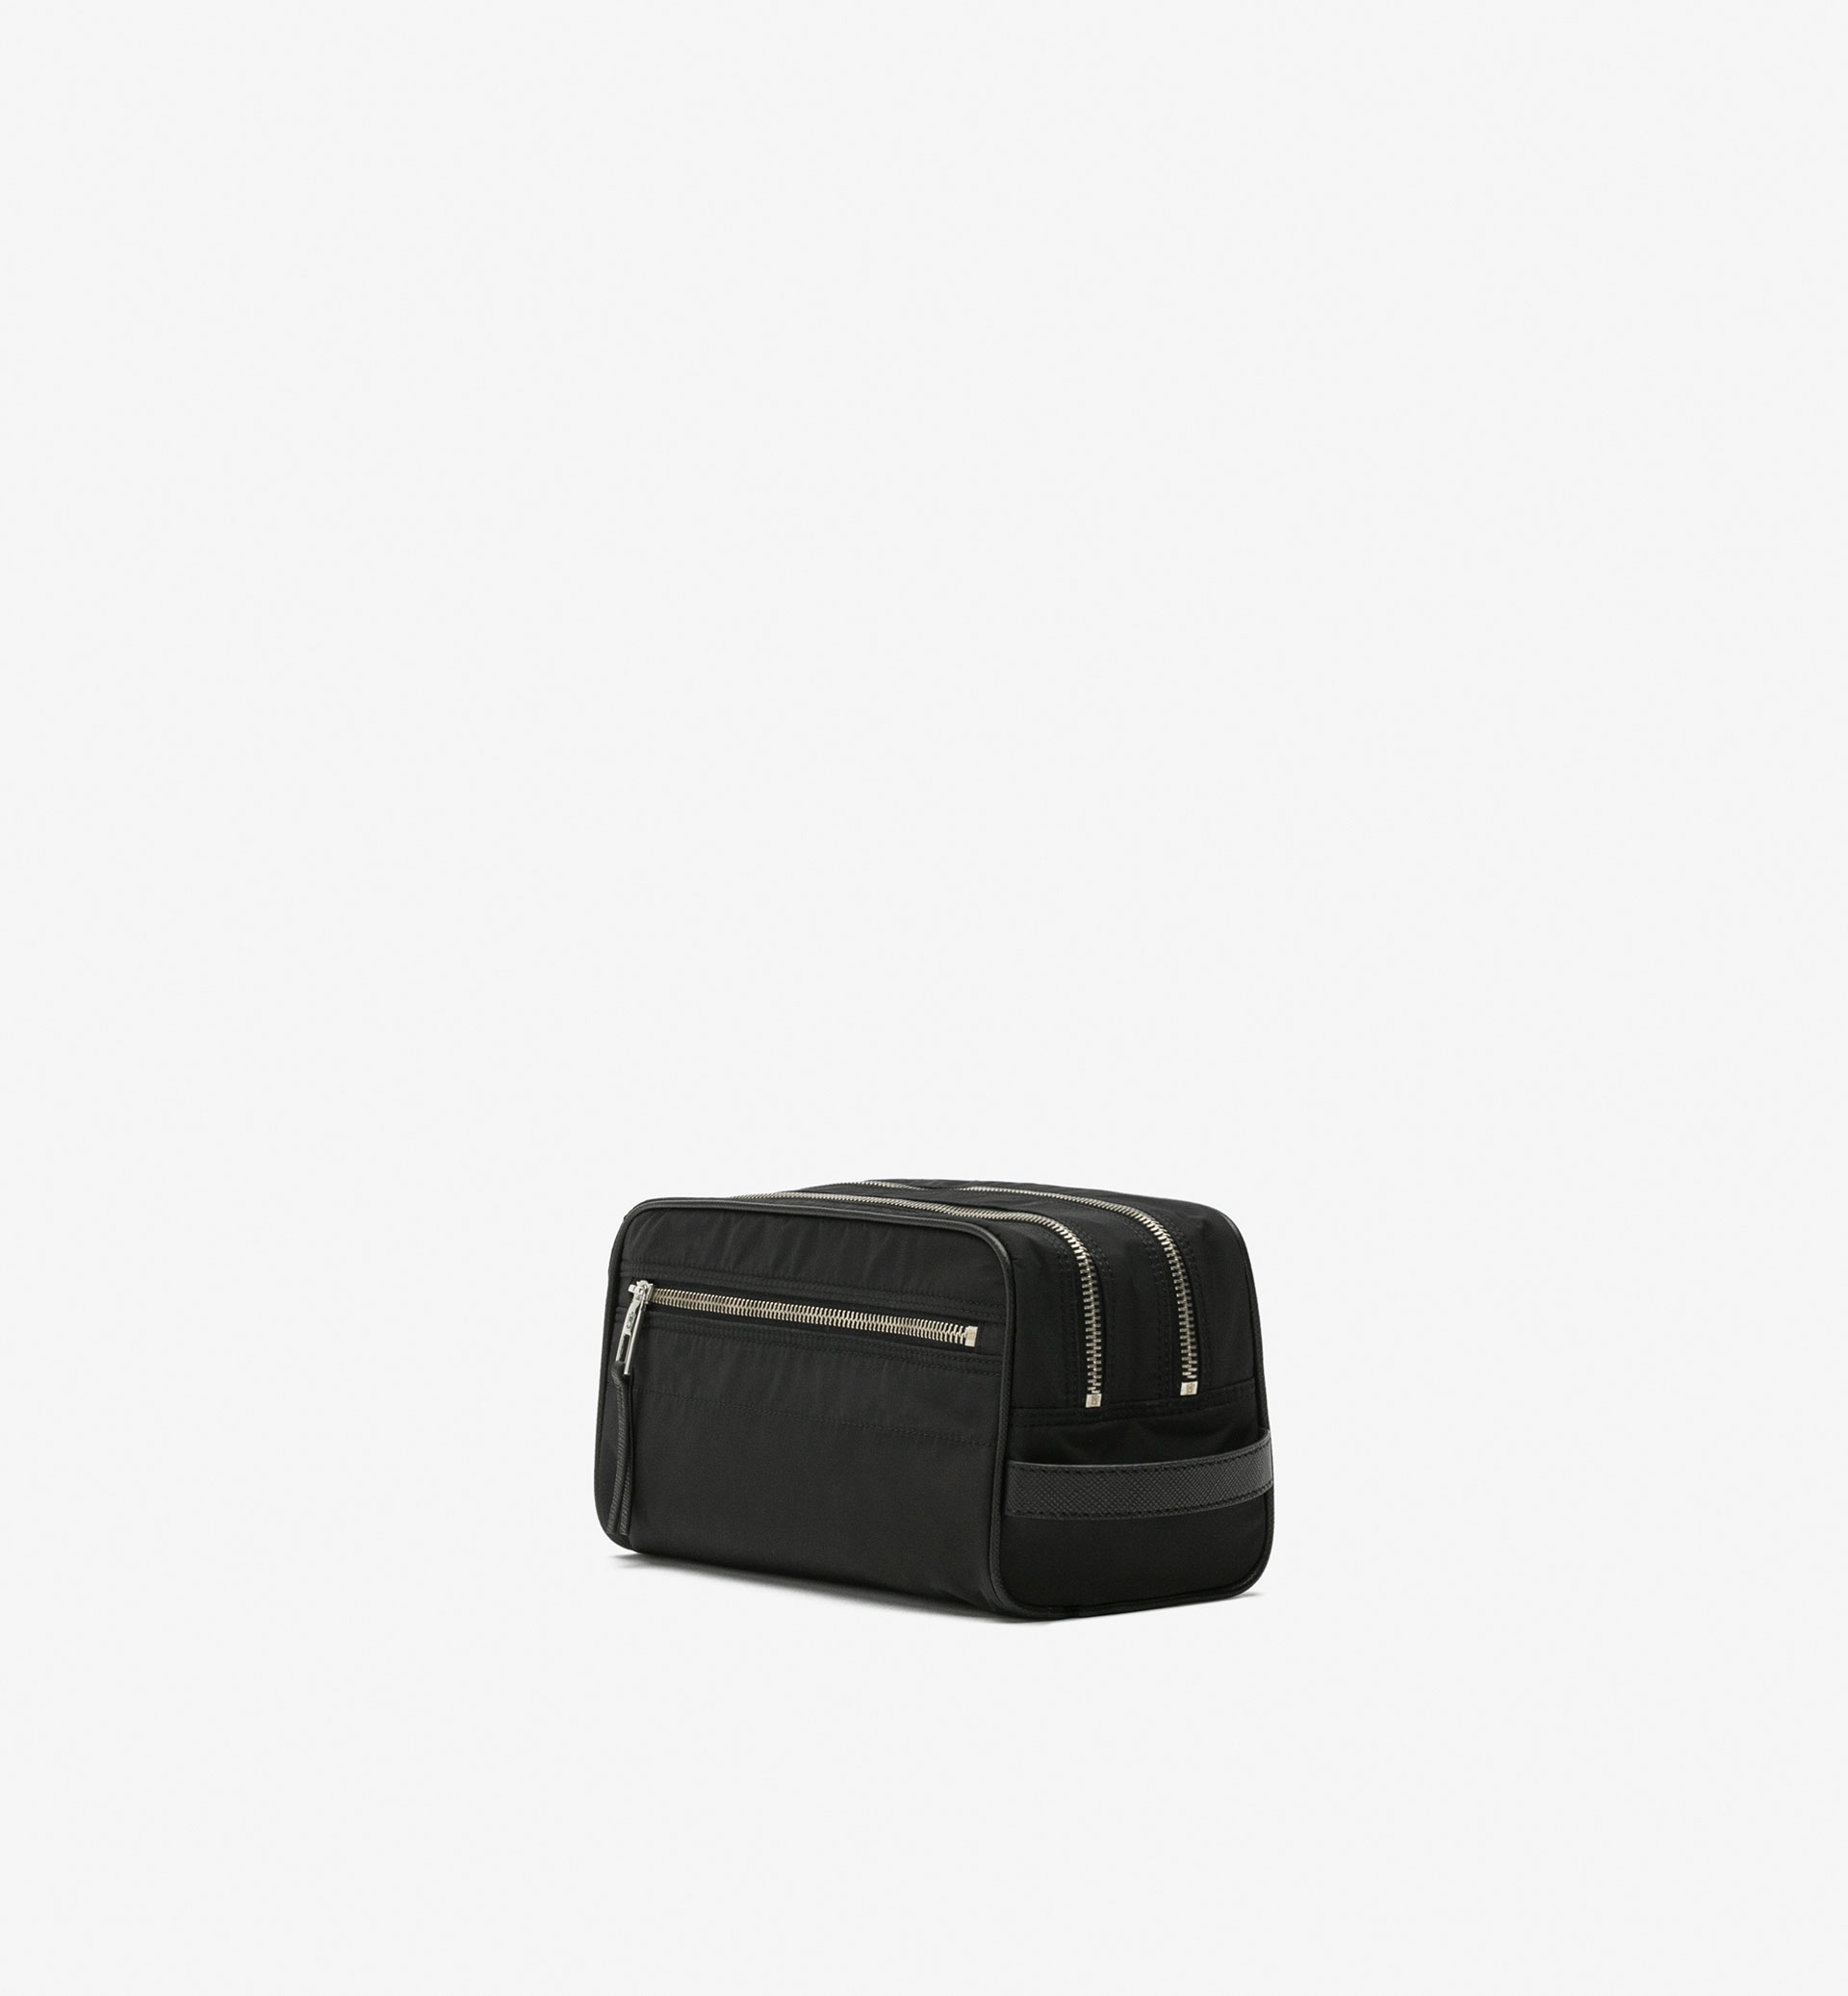 SOFT SAFFIANO TOILETRY BAG